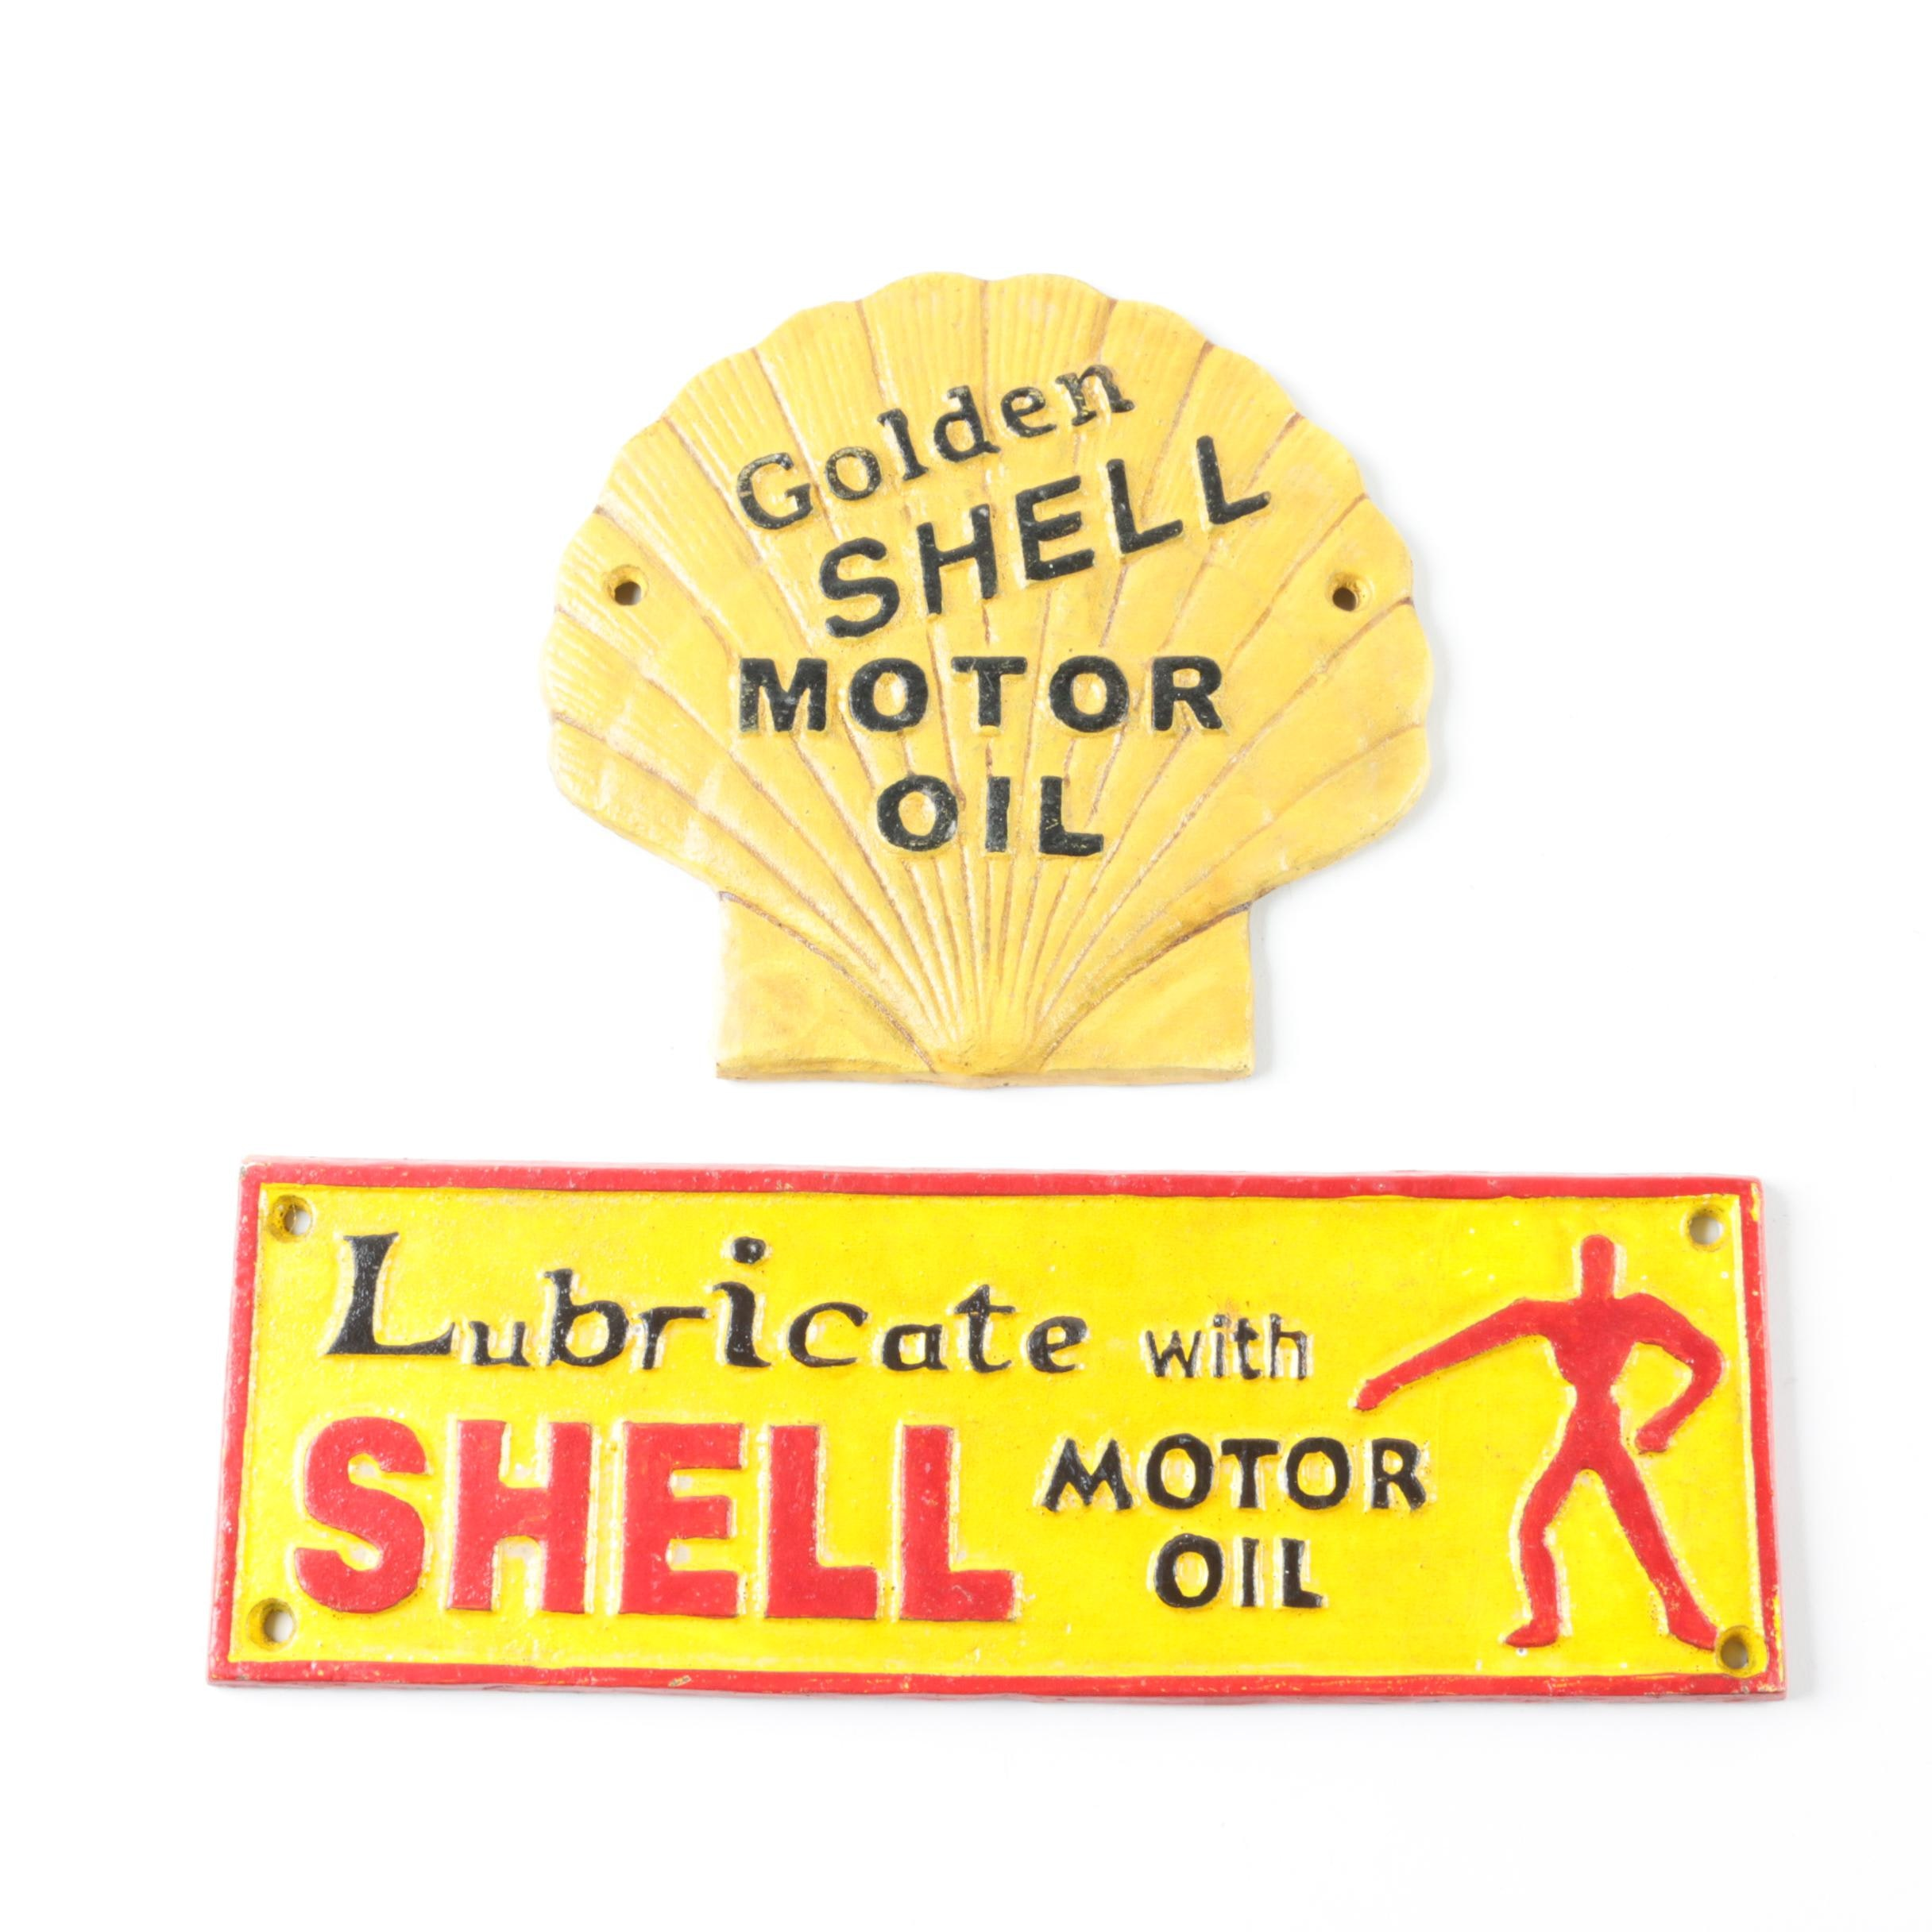 Iron Advertising Signs for Shell Motor Oil